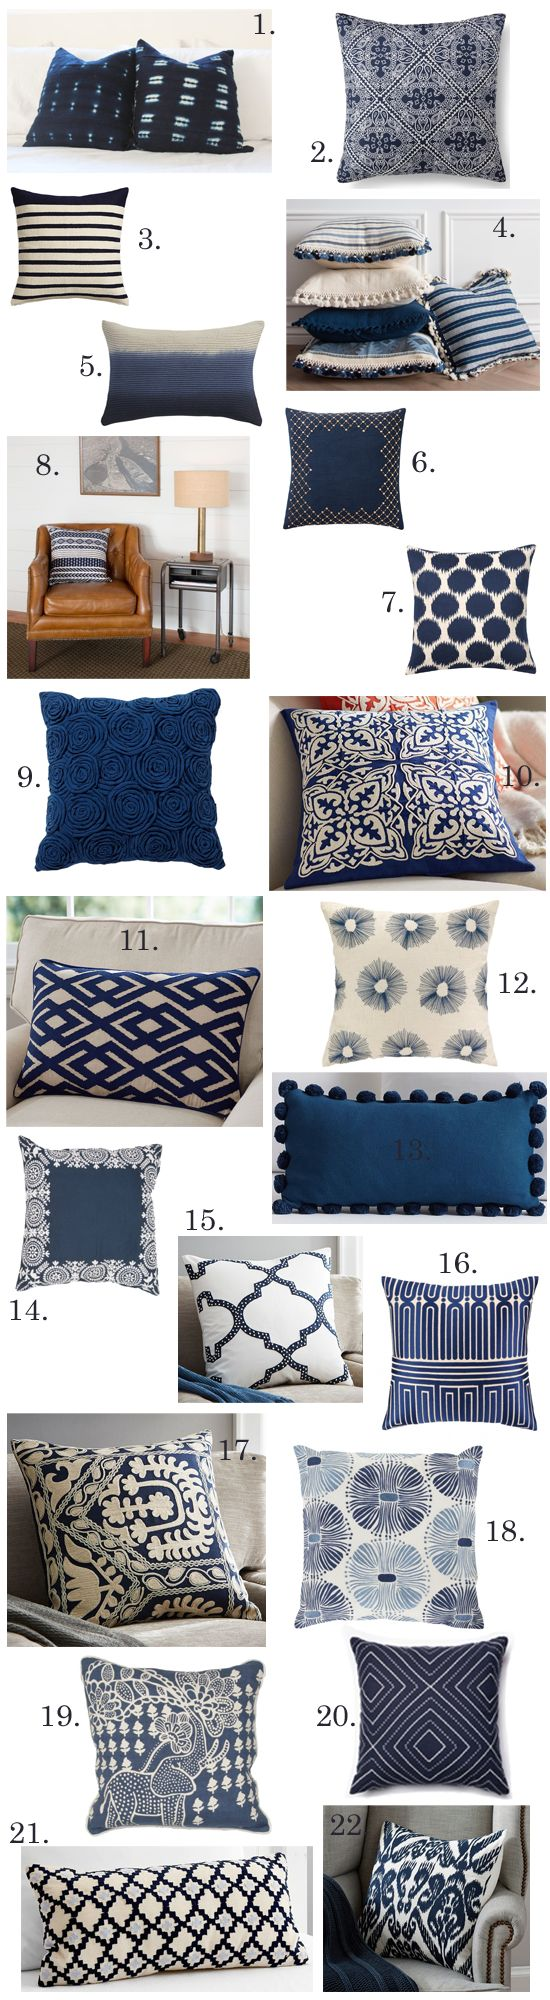 25+ best navy blue decor ideas on pinterest | navy master bedroom